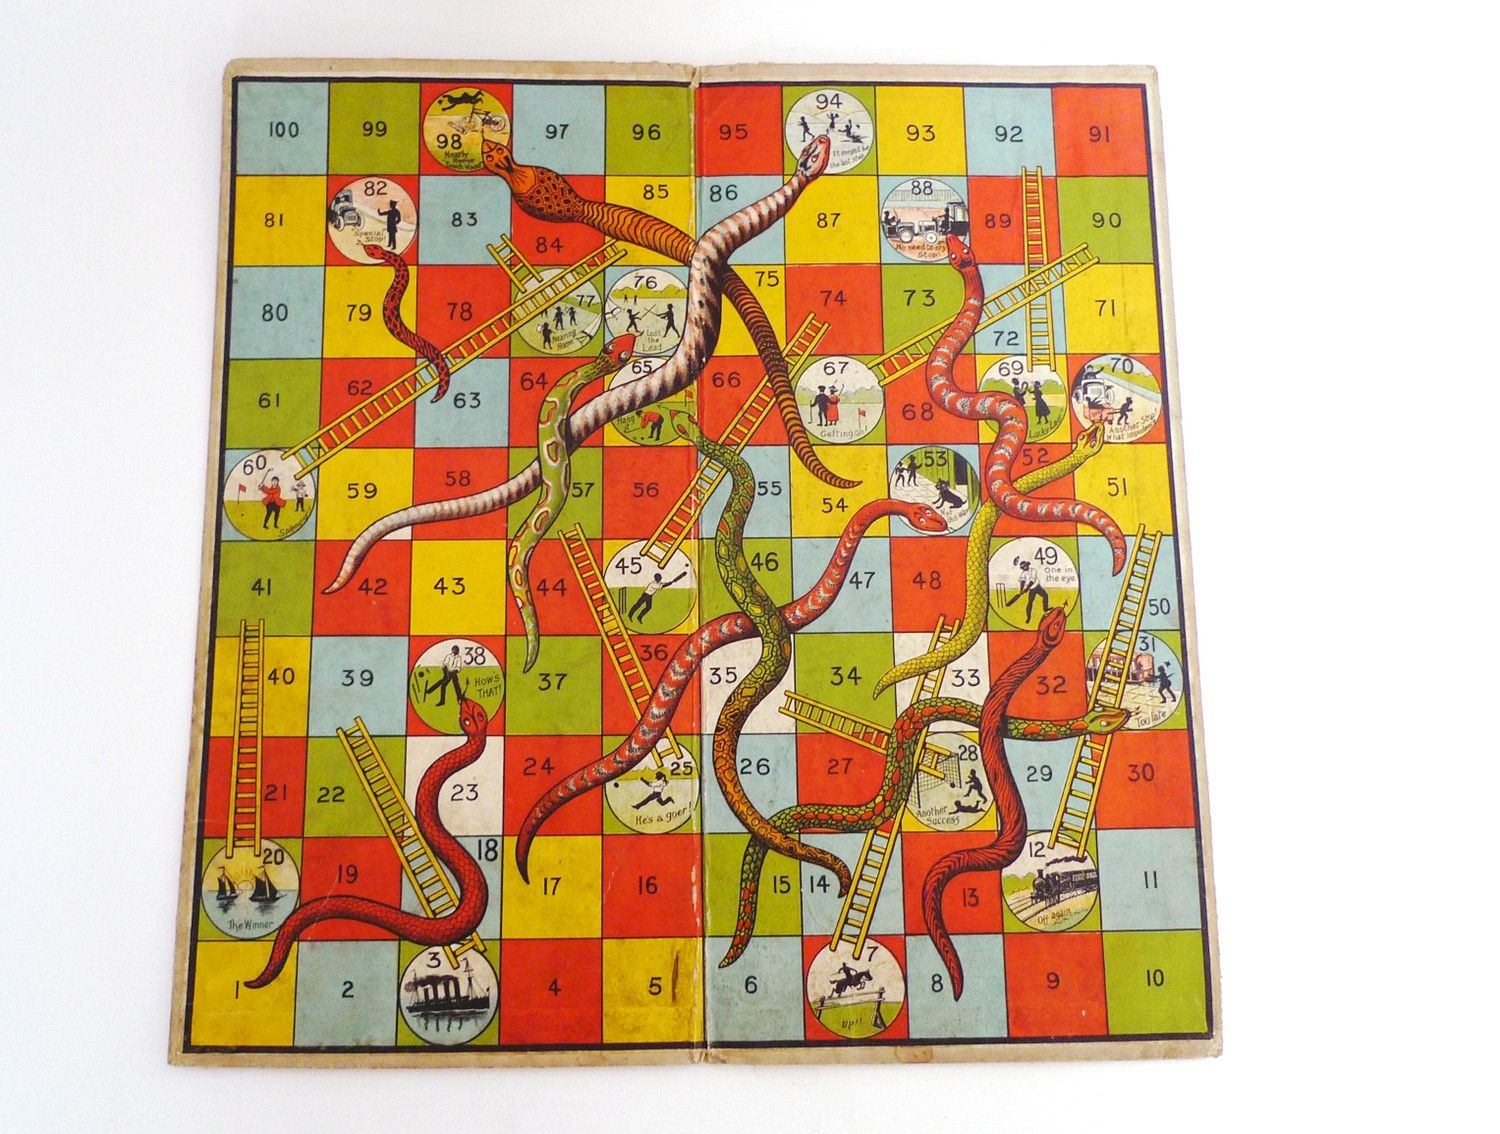 Pictures images snakes and ladders board game template wallpaper - Explore Vintage Board Games Retro Games And More Snakes Ladders Board